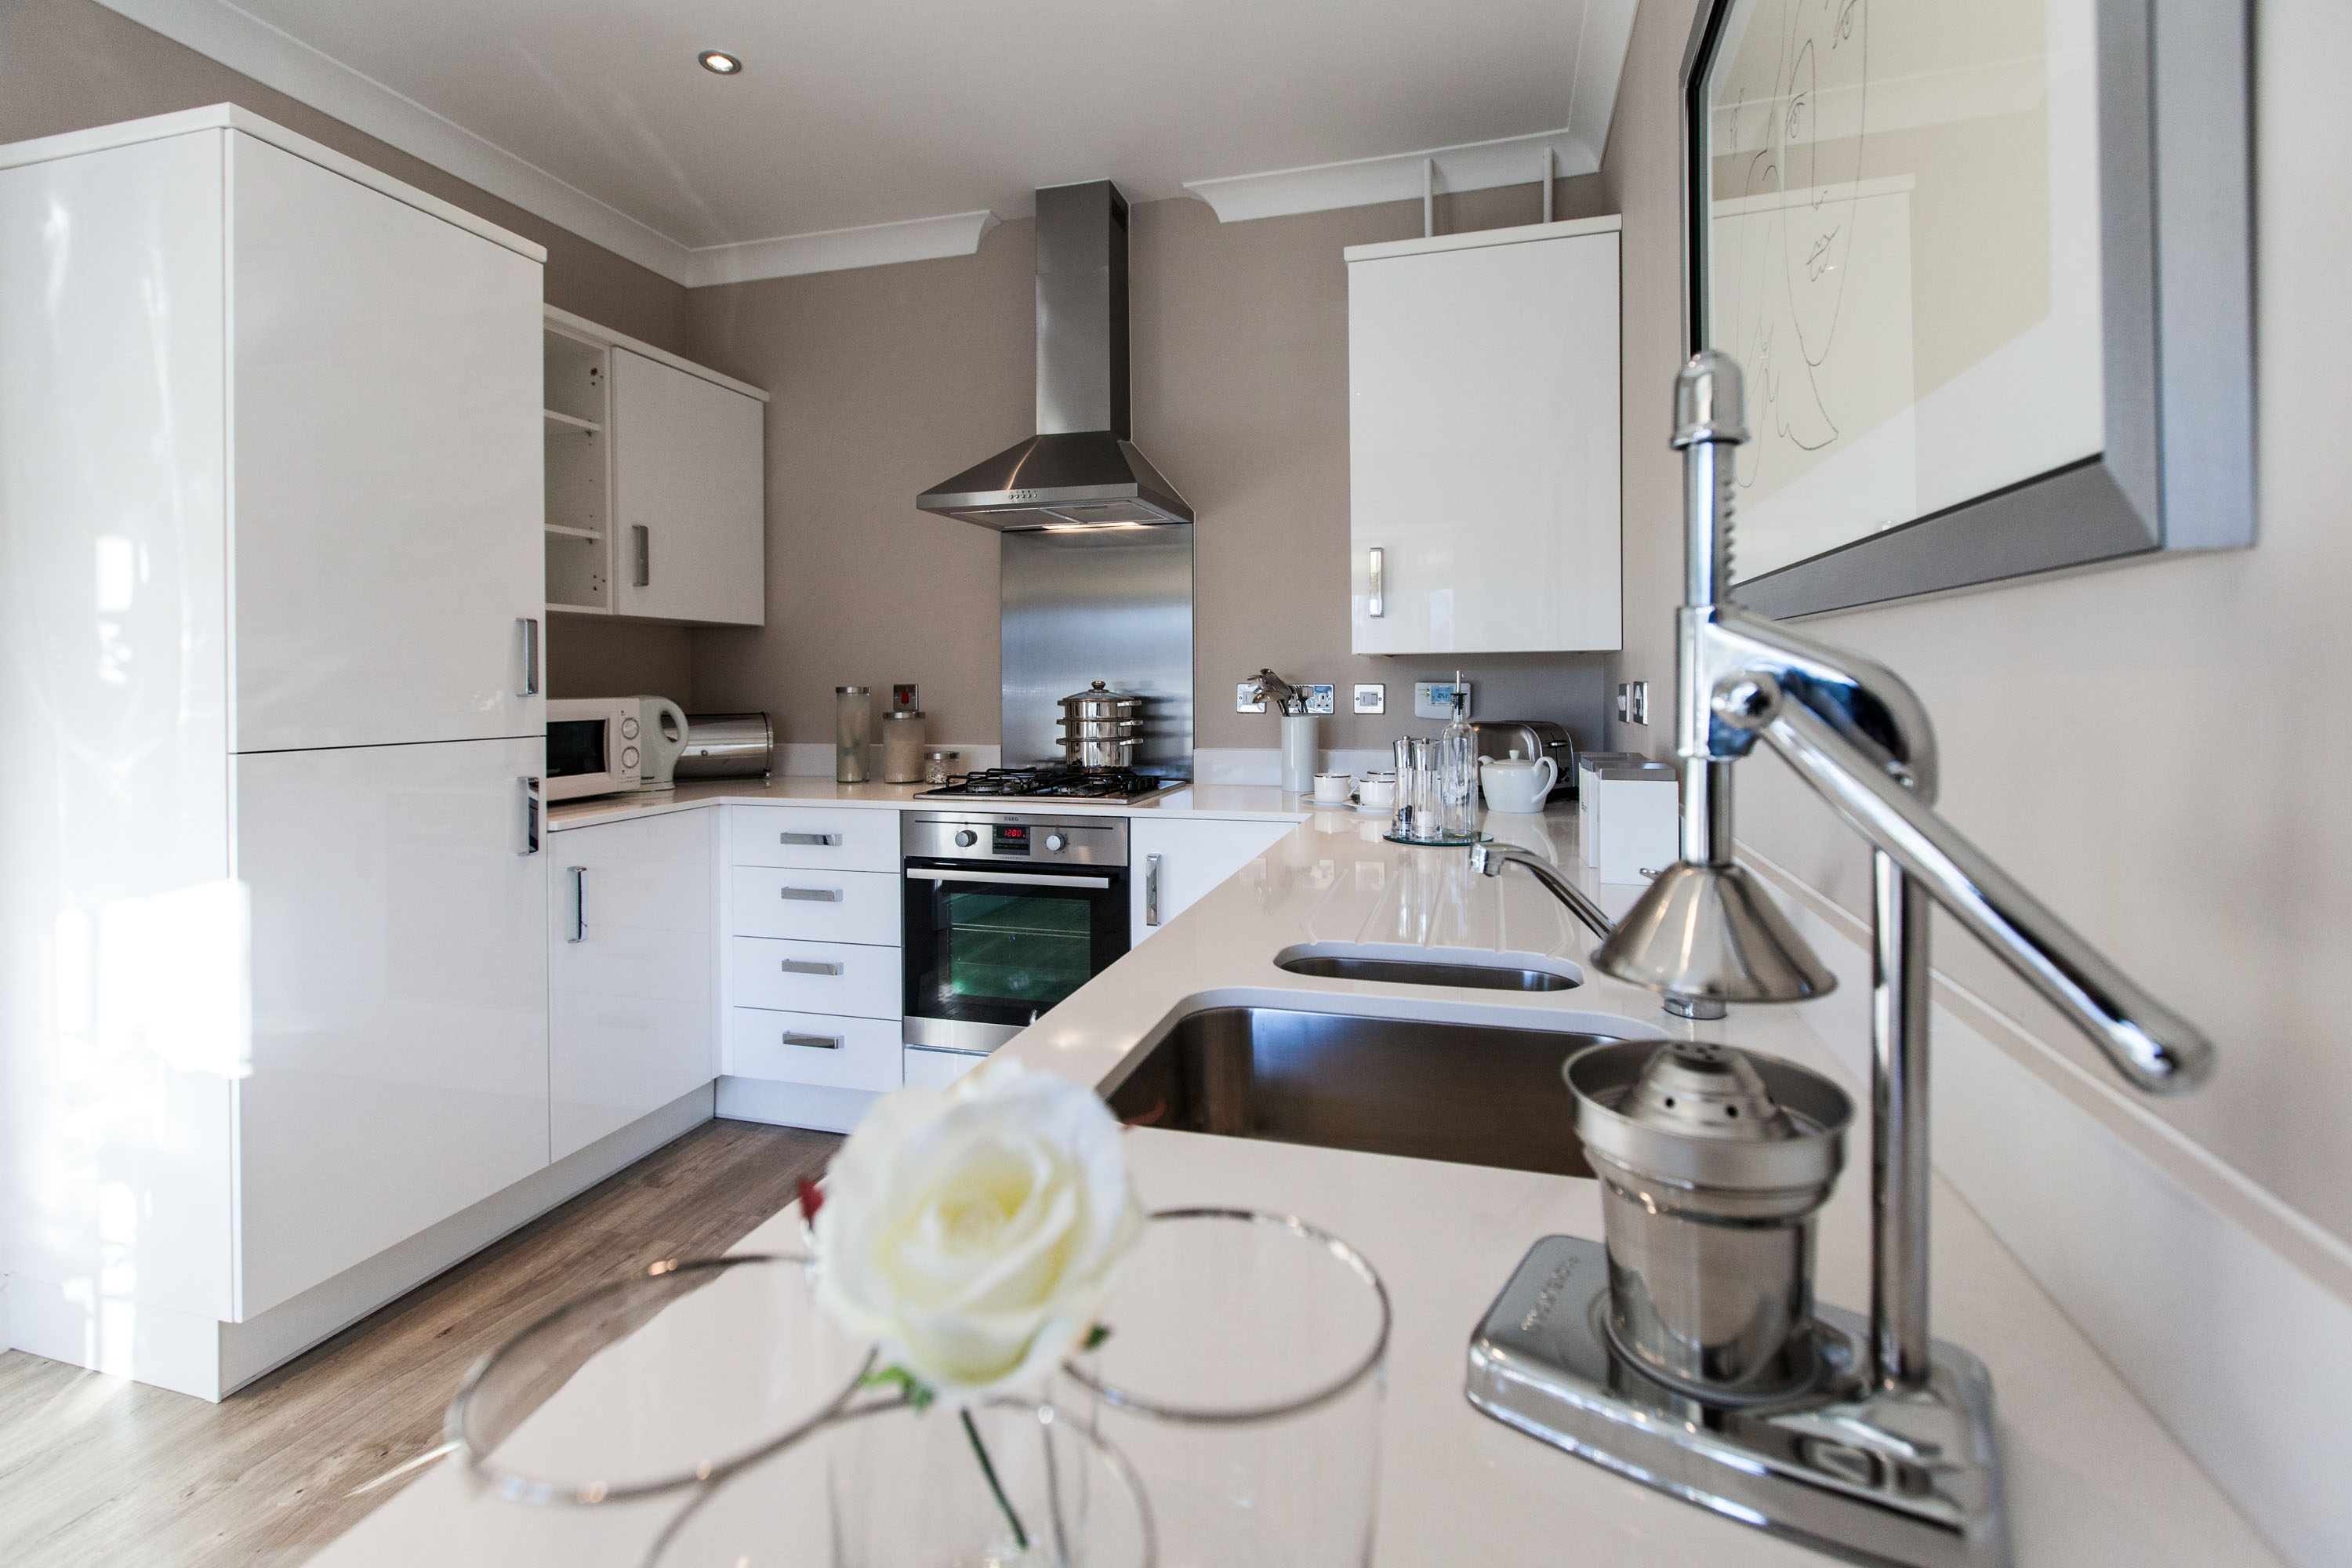 12M8PR. Charles Church Showhome Mill Court, Caerphilly